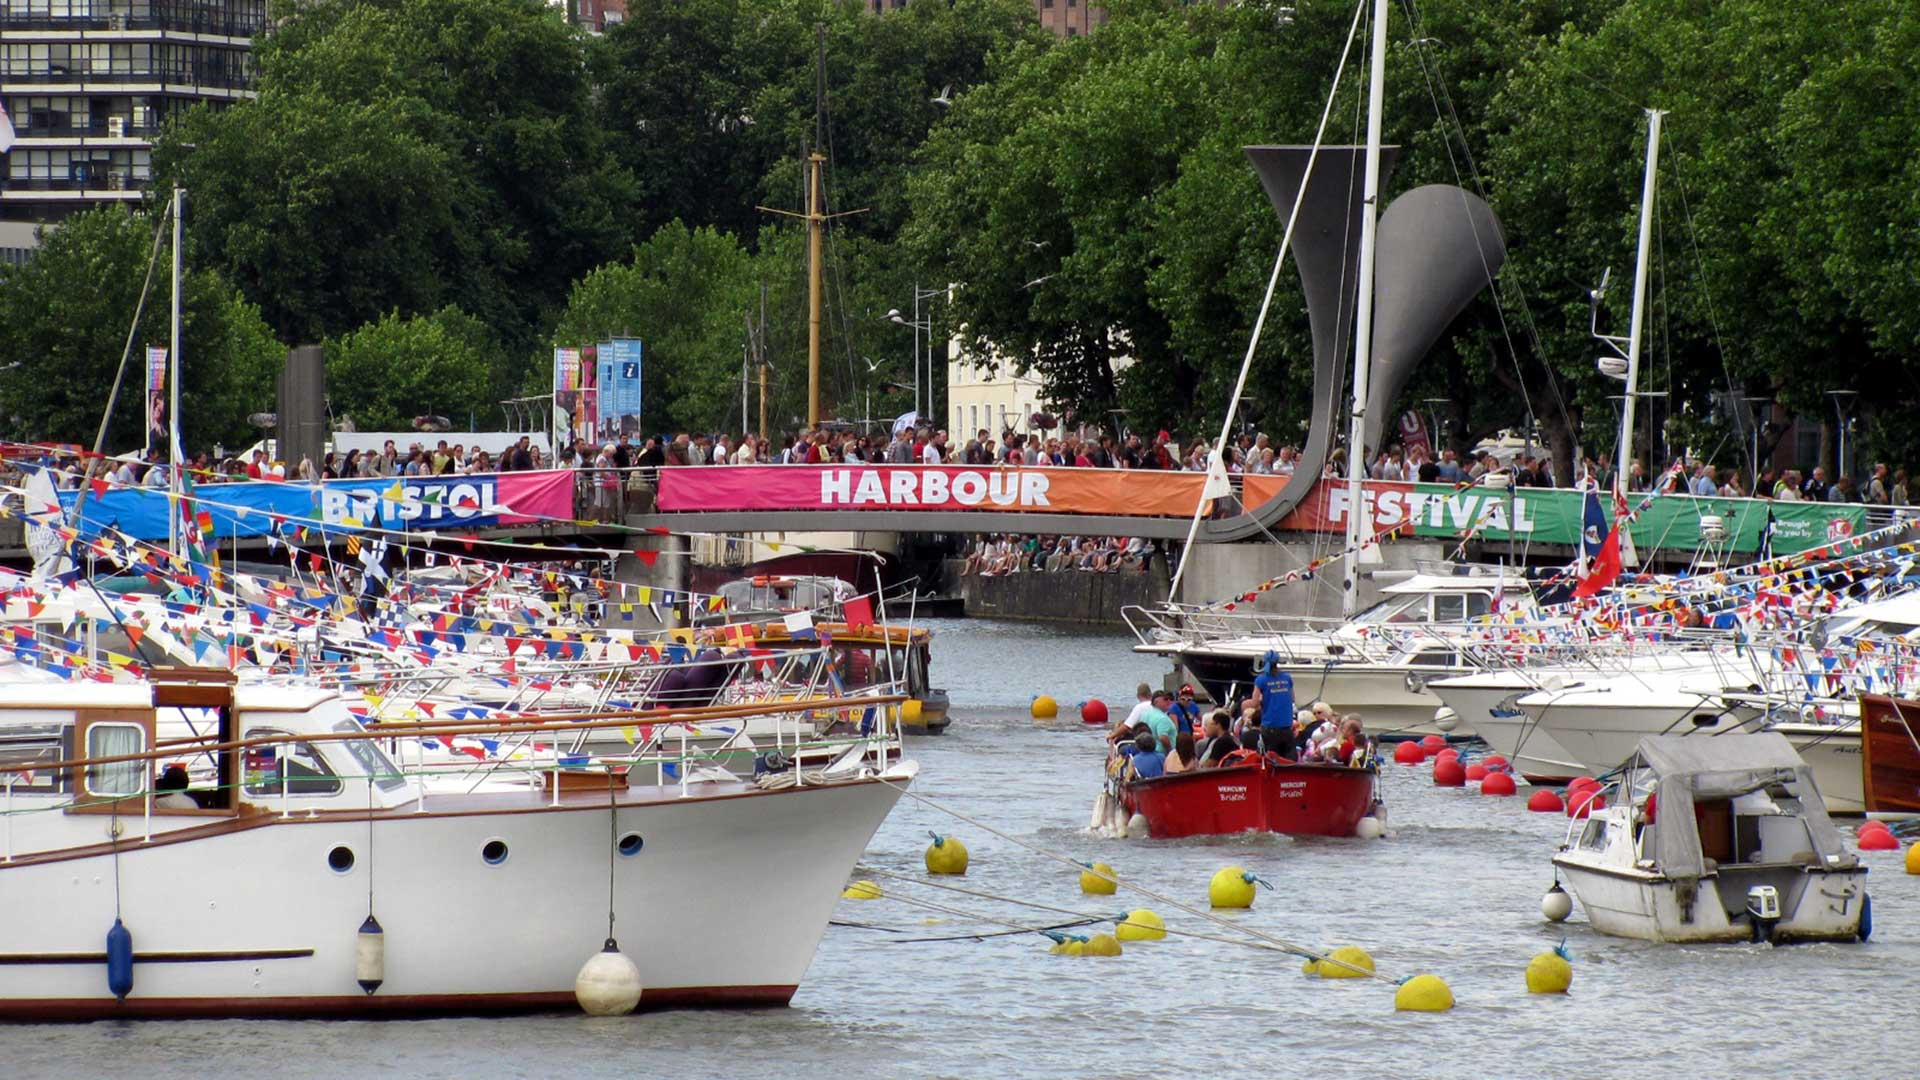 Boating event with yachts in harbour